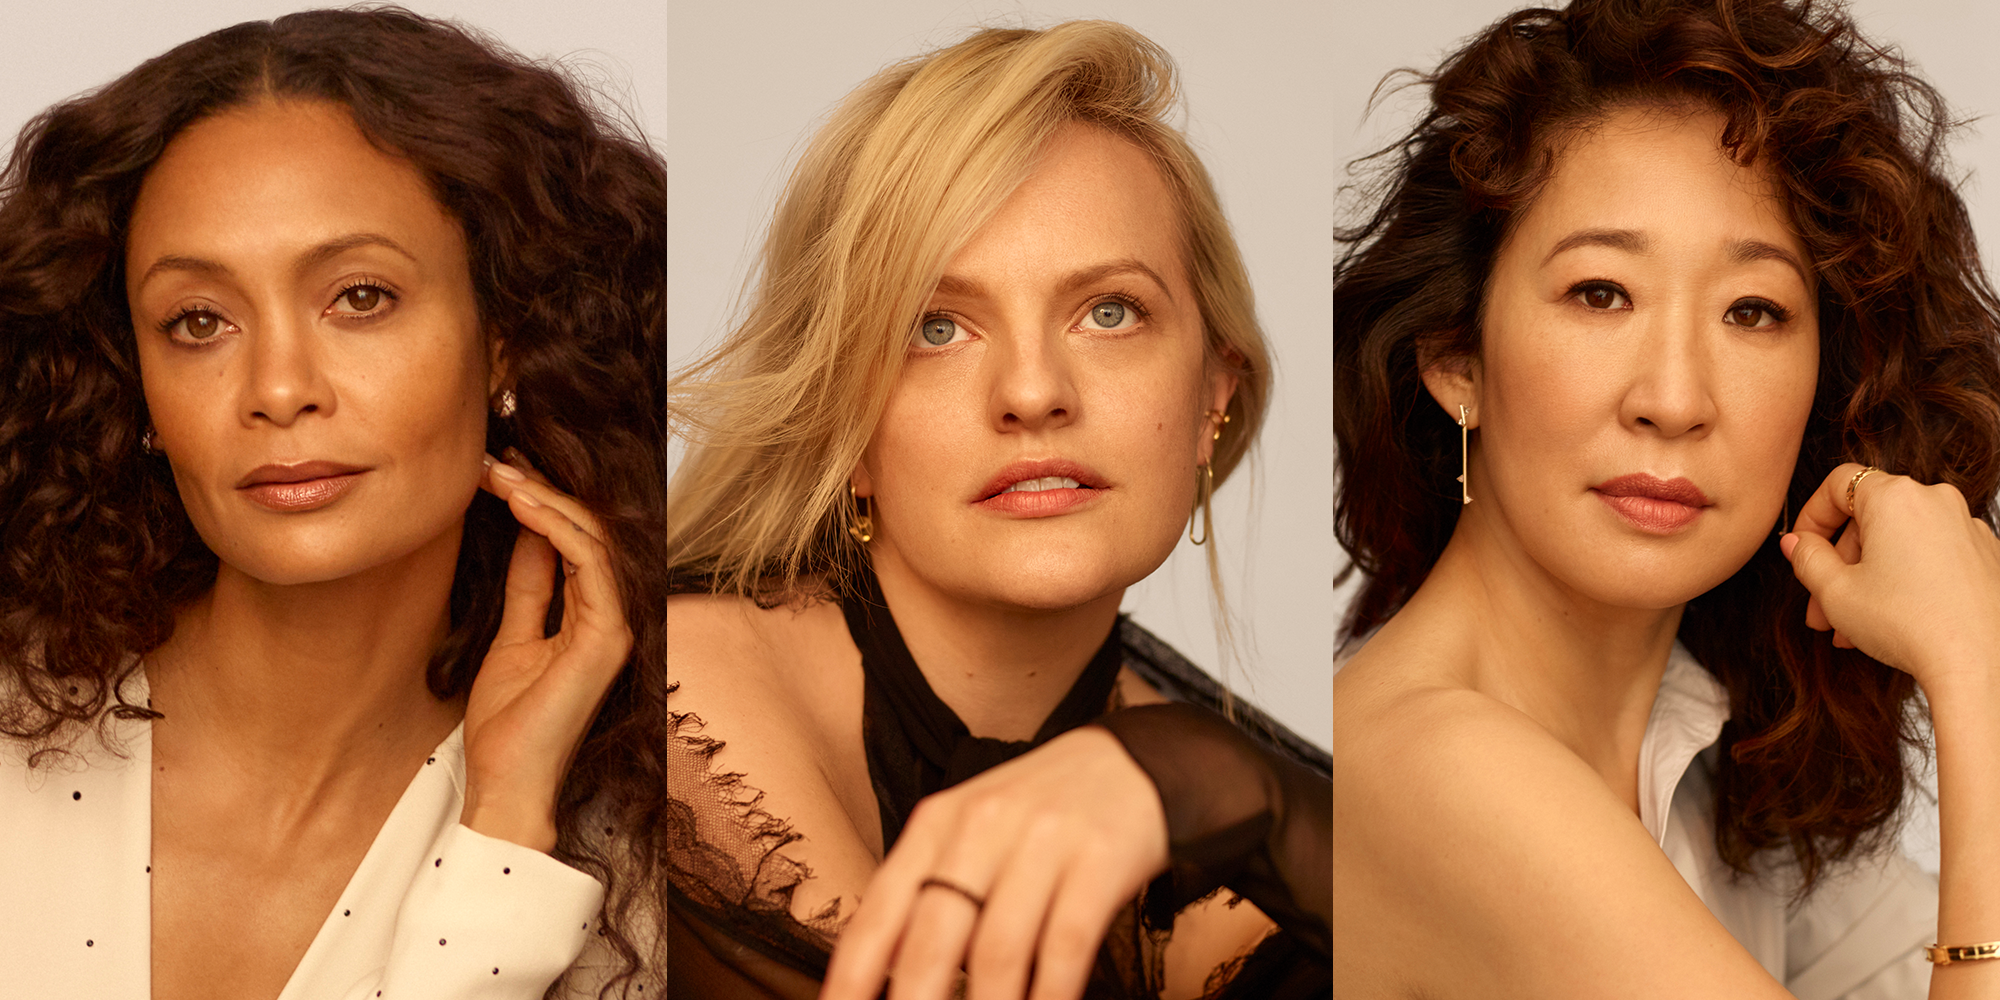 These women are defining a new kind of TV heroine.